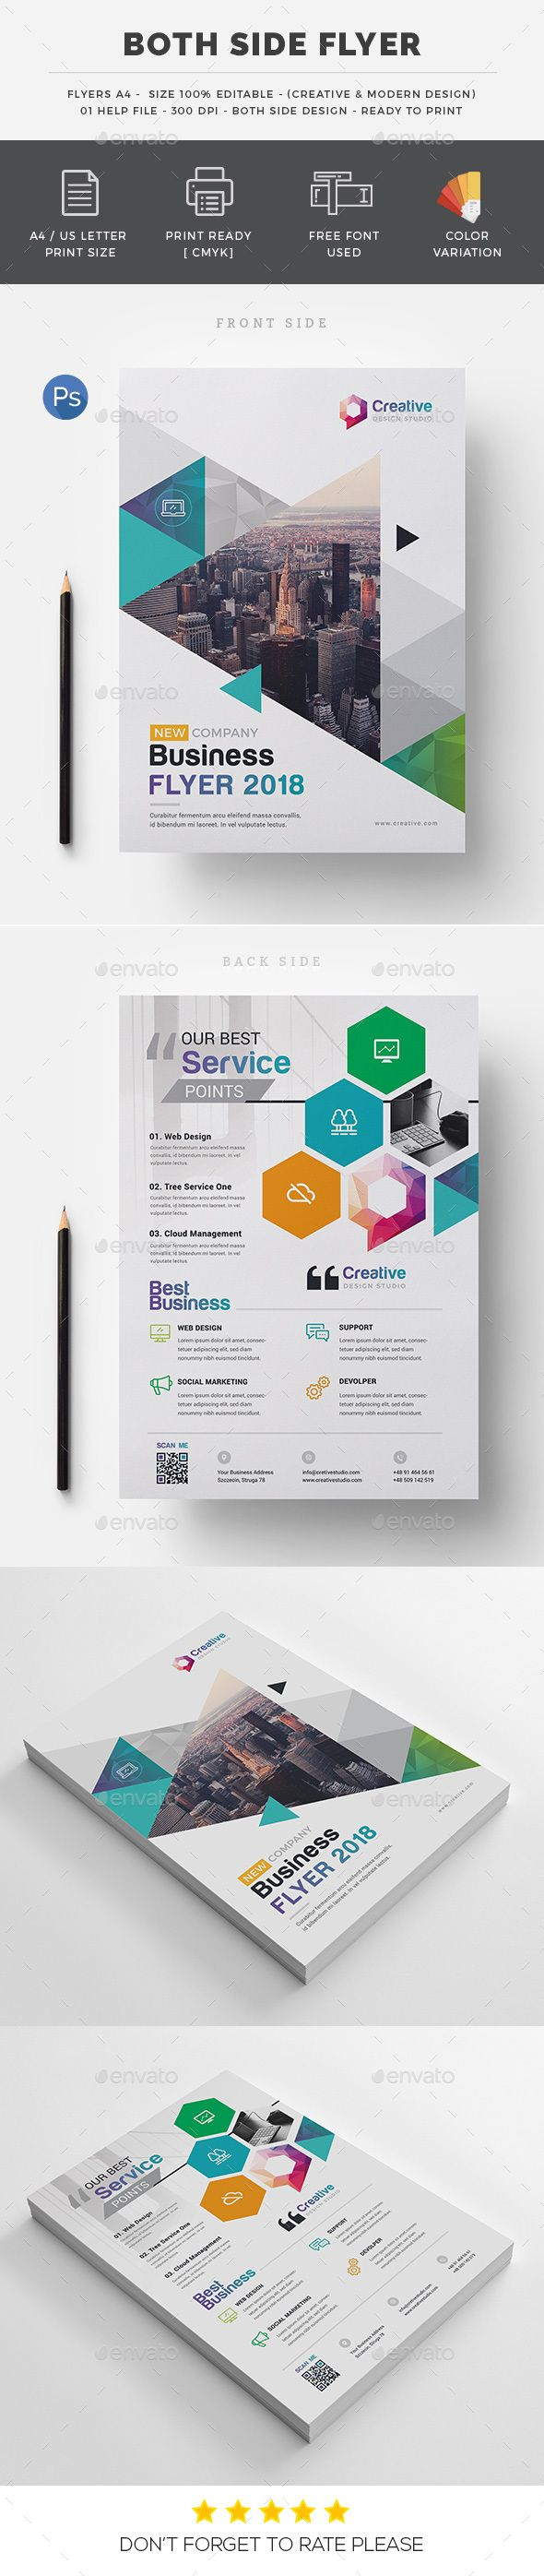 Both Side Flyer #business card #magazine  • Download here → https://graphicriver.net/item/both-side-flyer/20600290?ref=pxcr